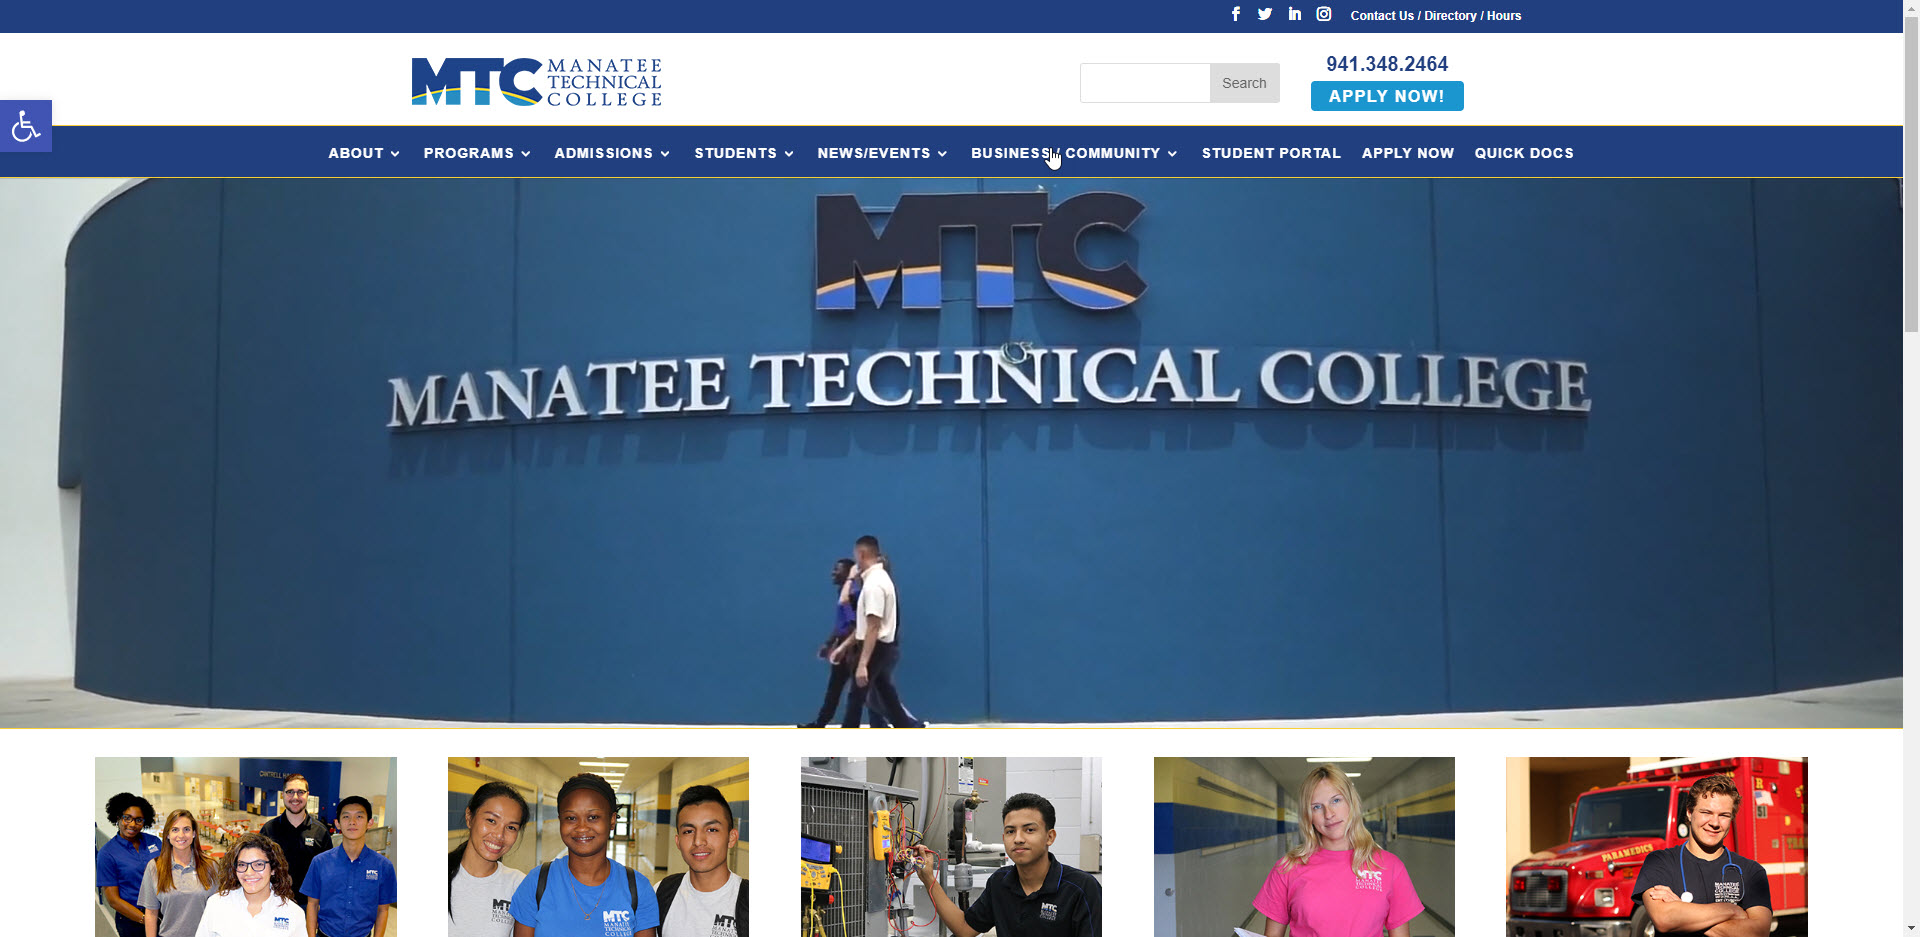 Manatee Technical College Bradenton Lakewood Ranch